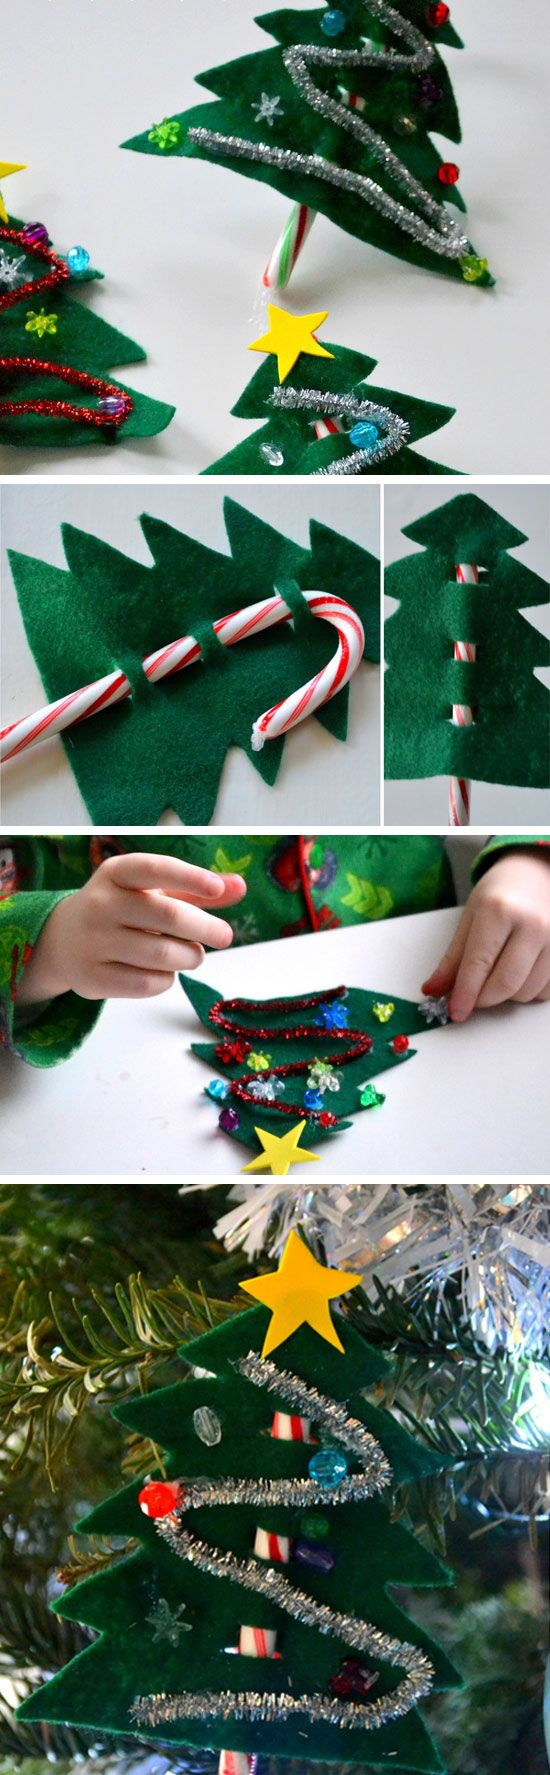 Candy Cane Christmas Trees   DIY Christmas Crafts for Kids to Make